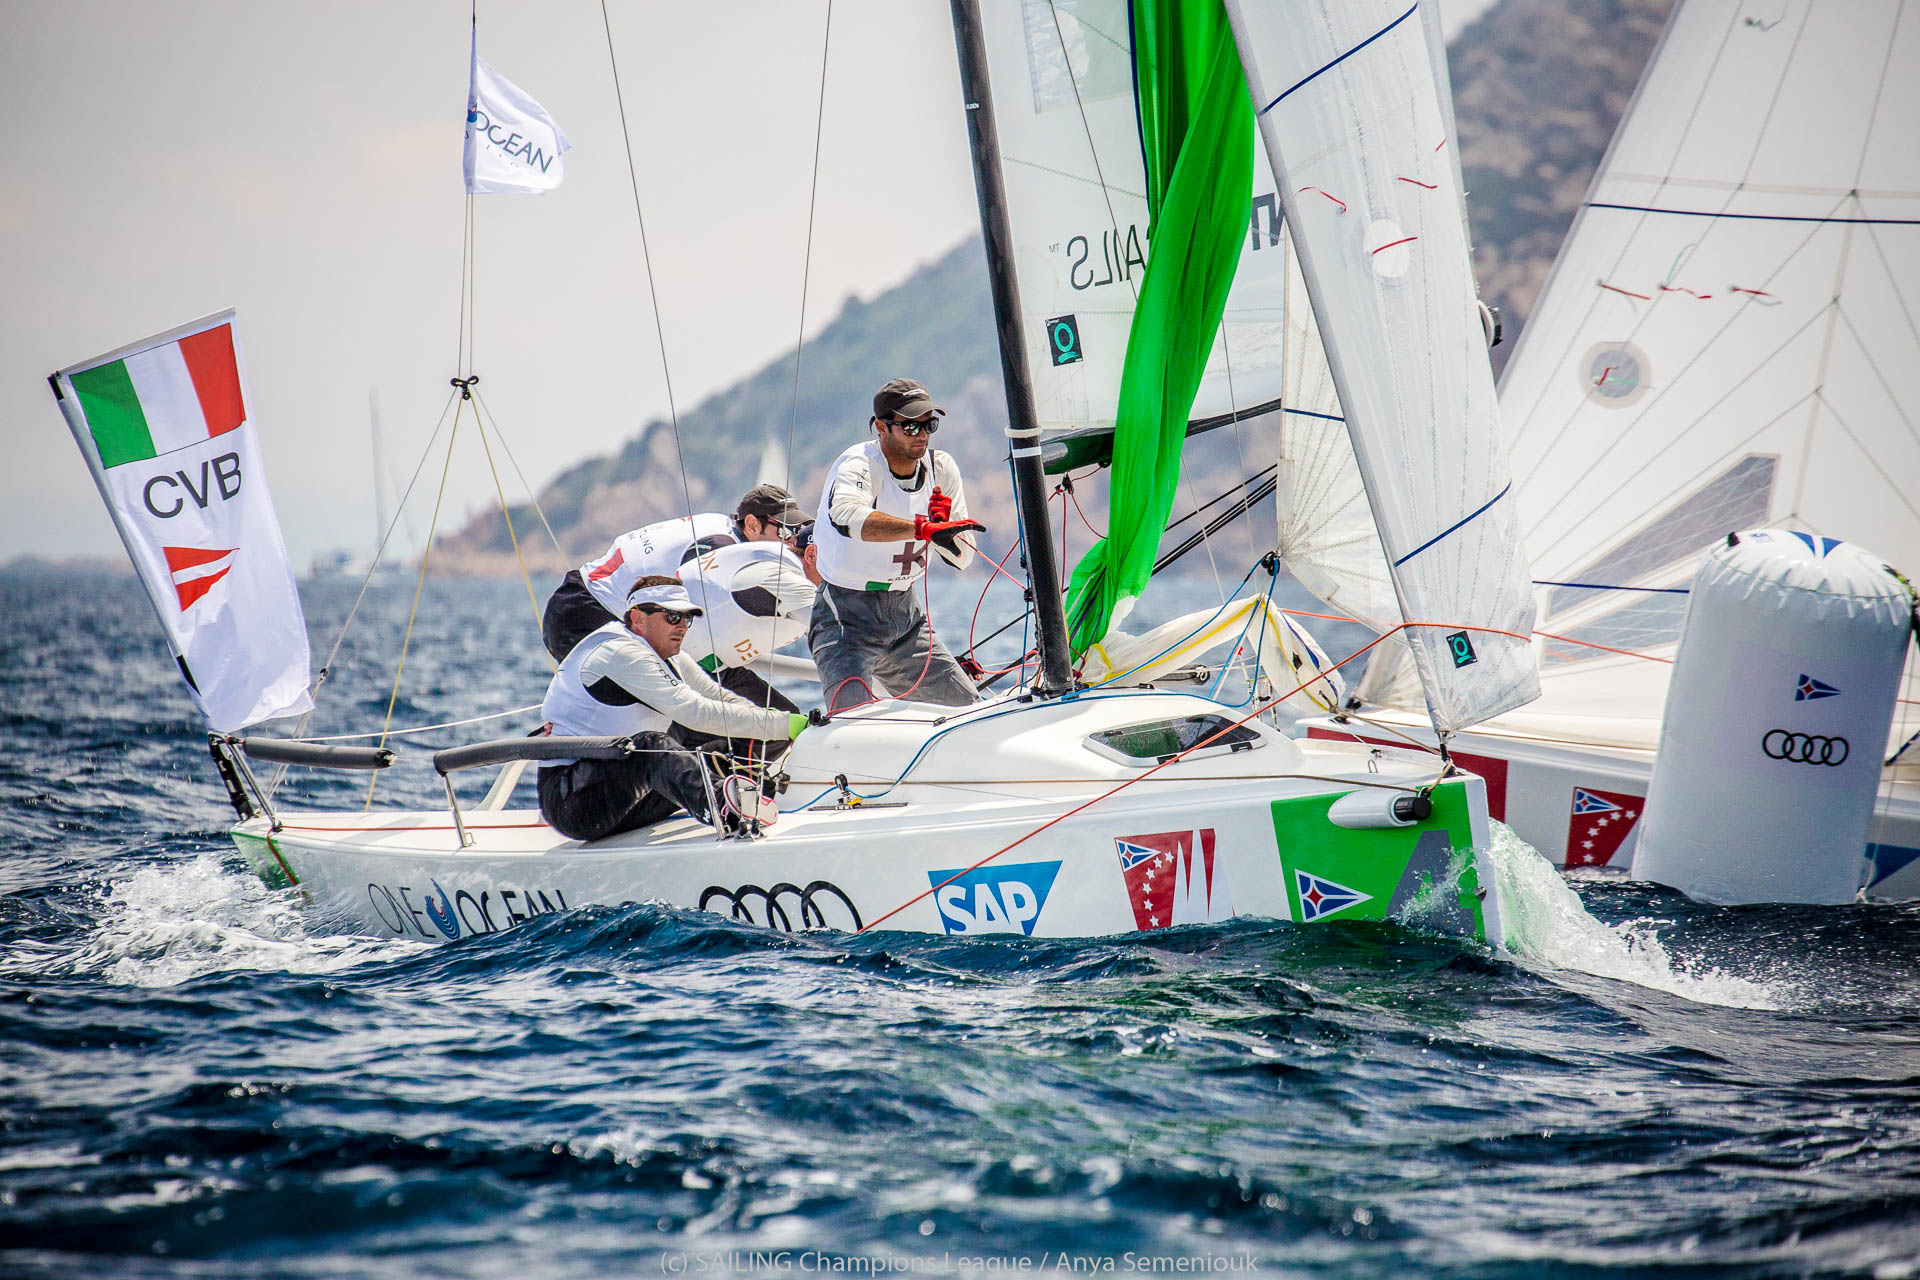 Circolo della Vela Bari scala la classifica della One Ocean Sailing Champions League  - NEWS - Yacht Club Costa Smeralda